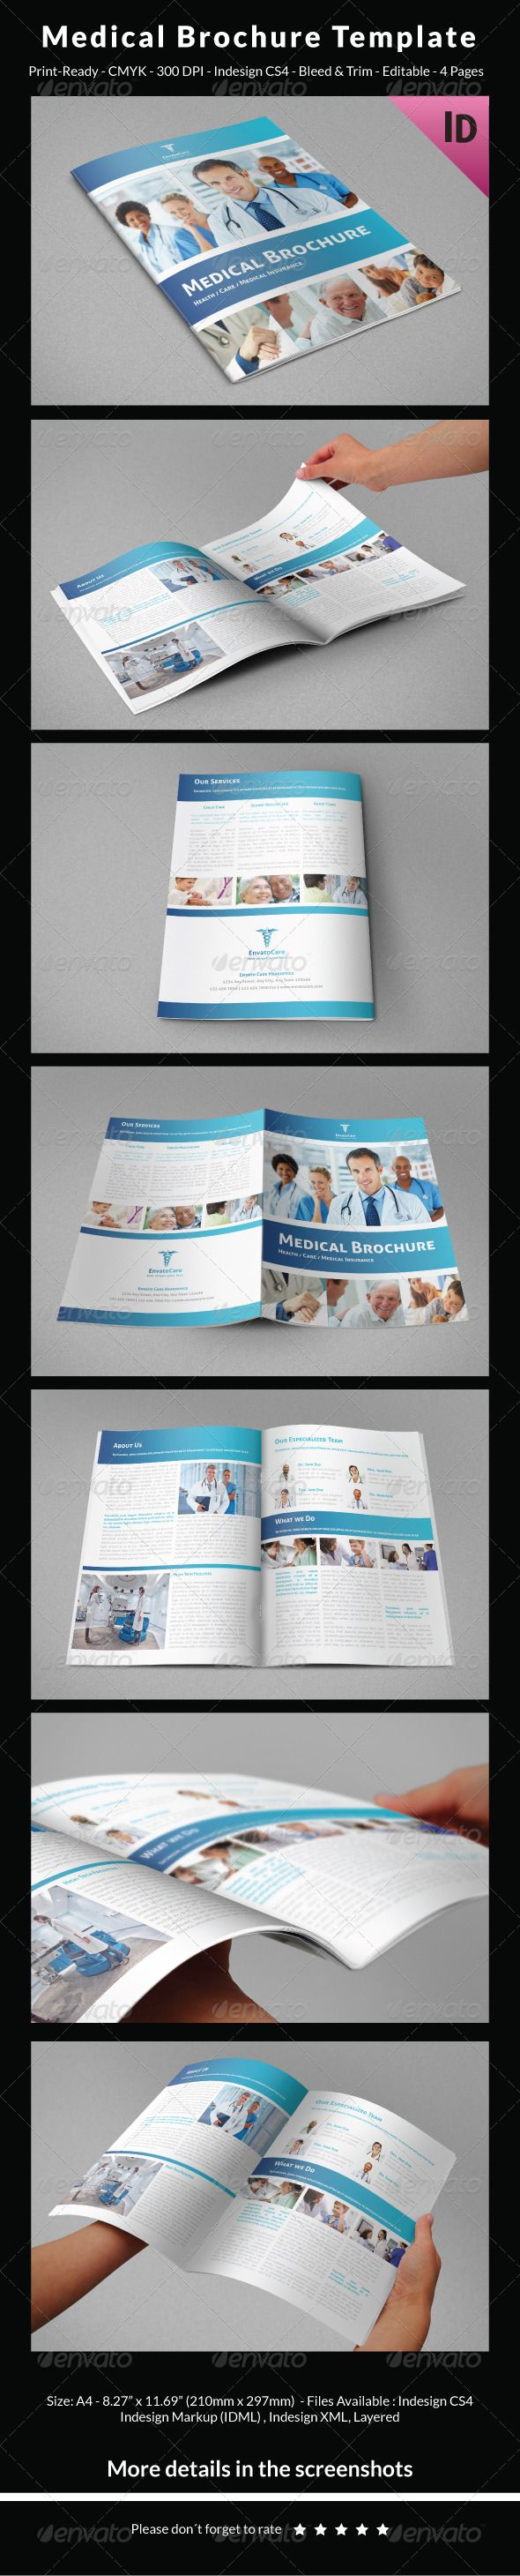 Medical Brochure Template